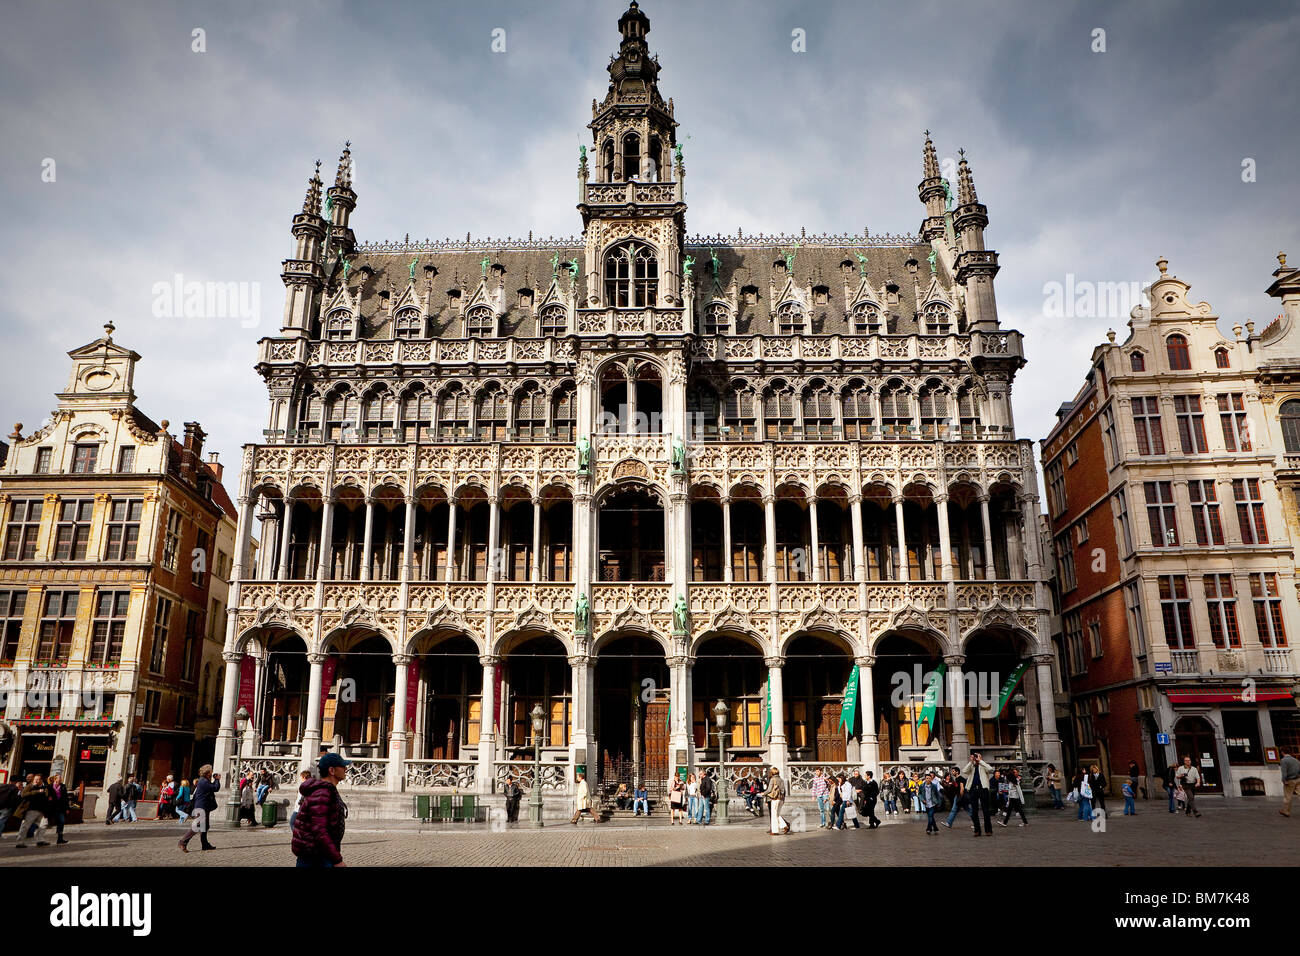 grand place grote markt broodhuis maison du roi brussels stock photo 29672168 alamy. Black Bedroom Furniture Sets. Home Design Ideas